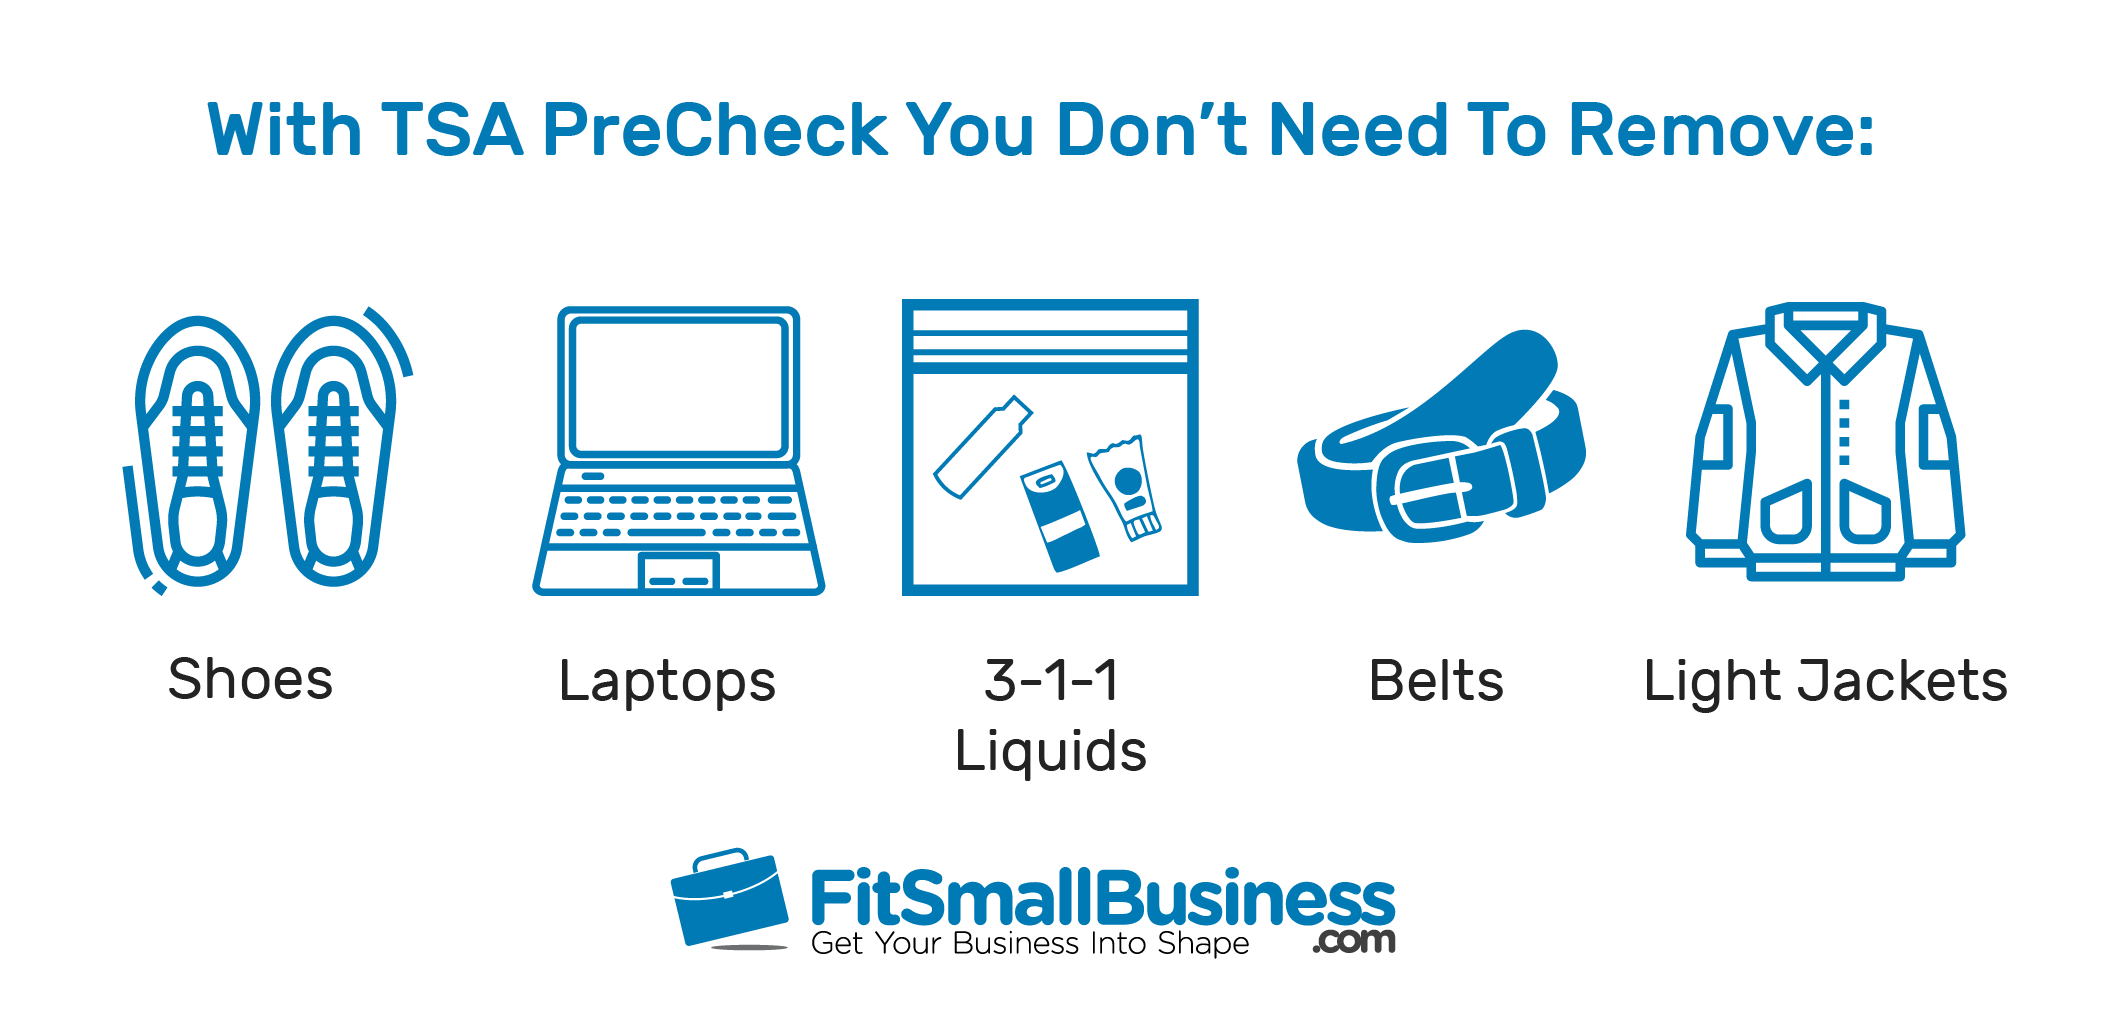 Info-graphics of items that you don't need to remove for tsa precheck